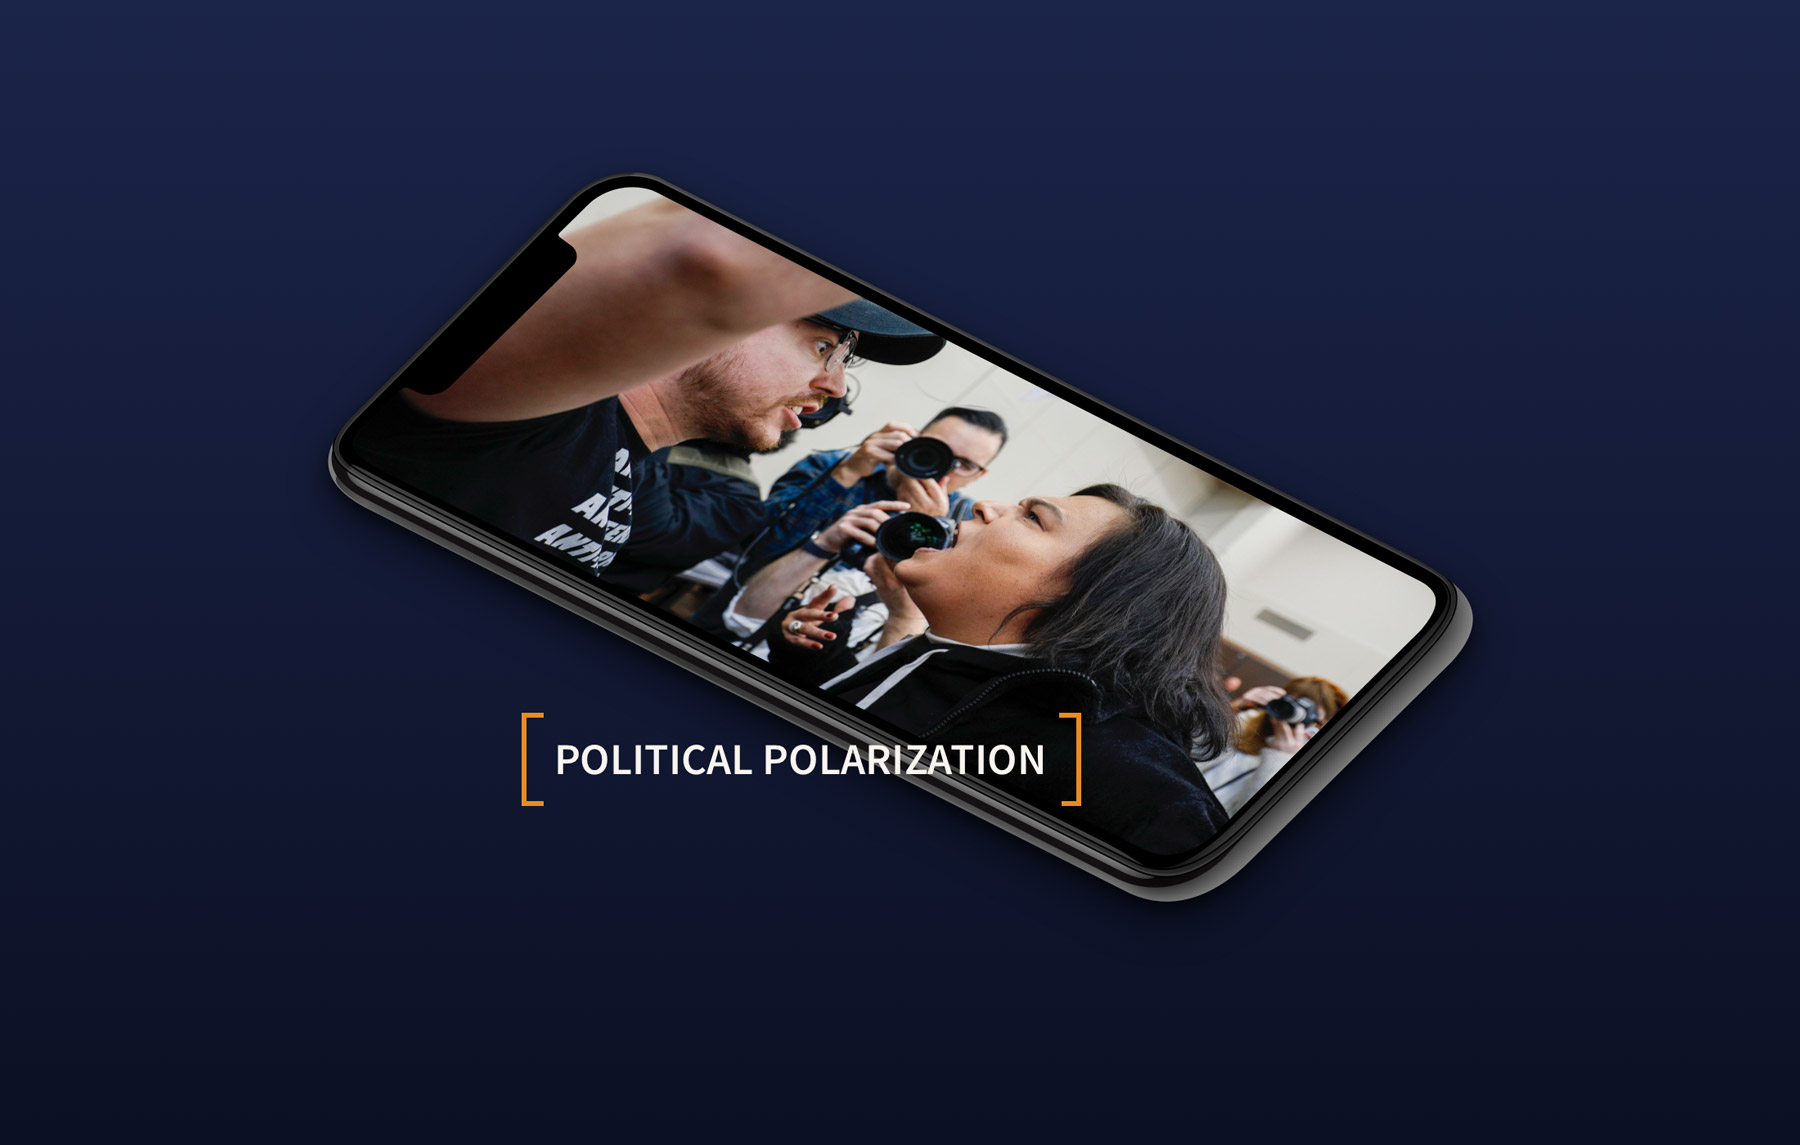 Center For Humane Technology Hero 3 - Political Polarization